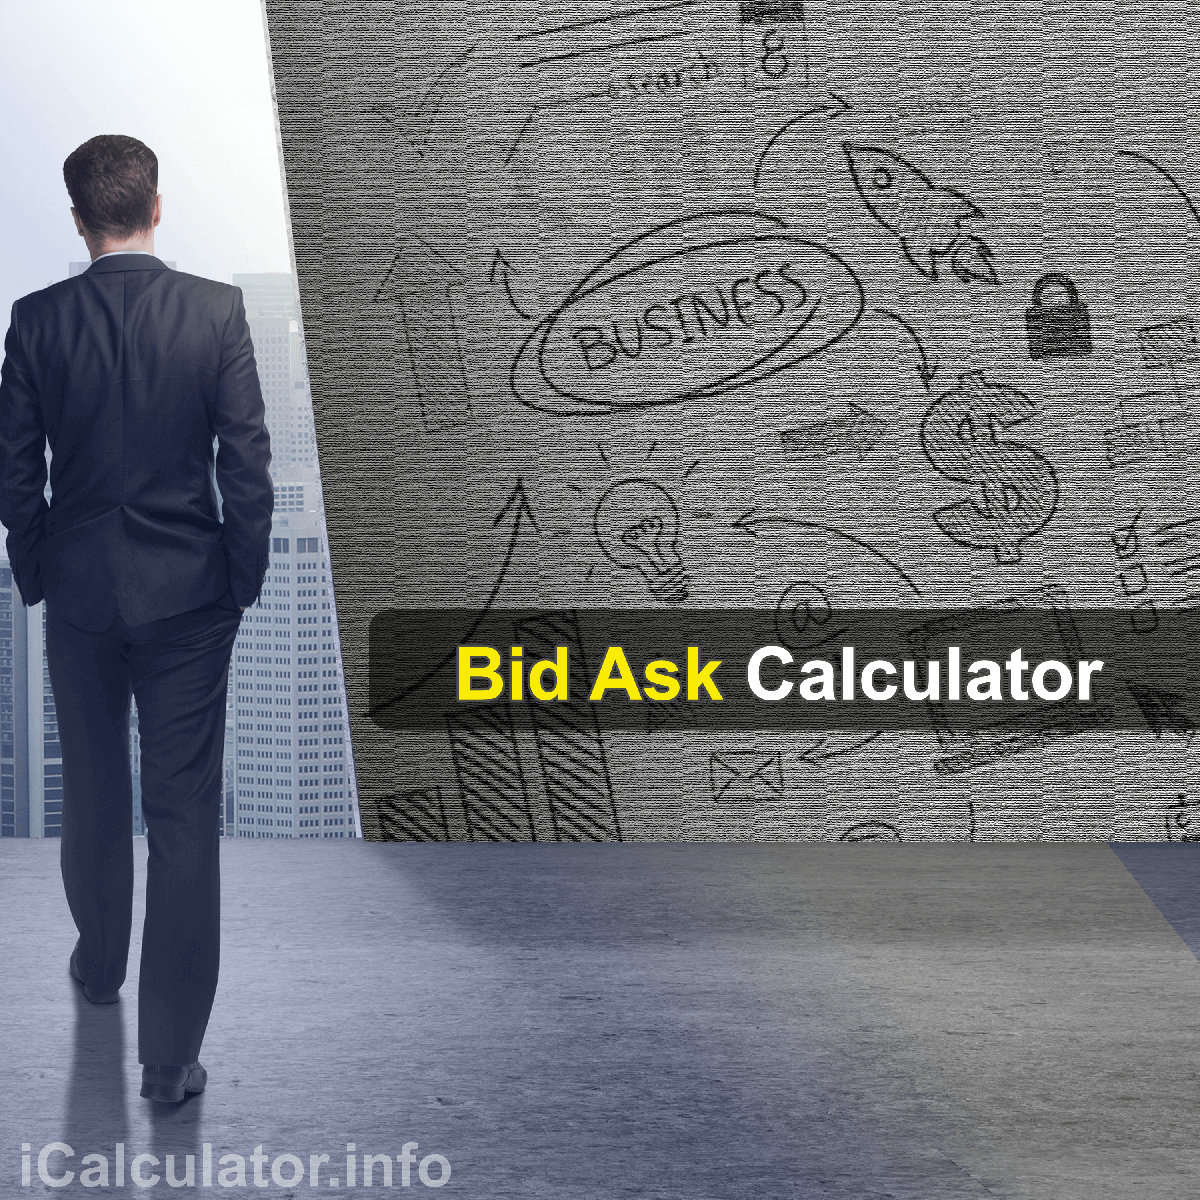 Bid-Ask Calculator. This image provides details of how to calculate Bid-Ask using a calculator and notepad. By using the Bid-Ask formula, the Bid-Ask Calculator provides a true calculation of the price of sale and purchase of stocks that affects the entire stock profitability of a portfolio